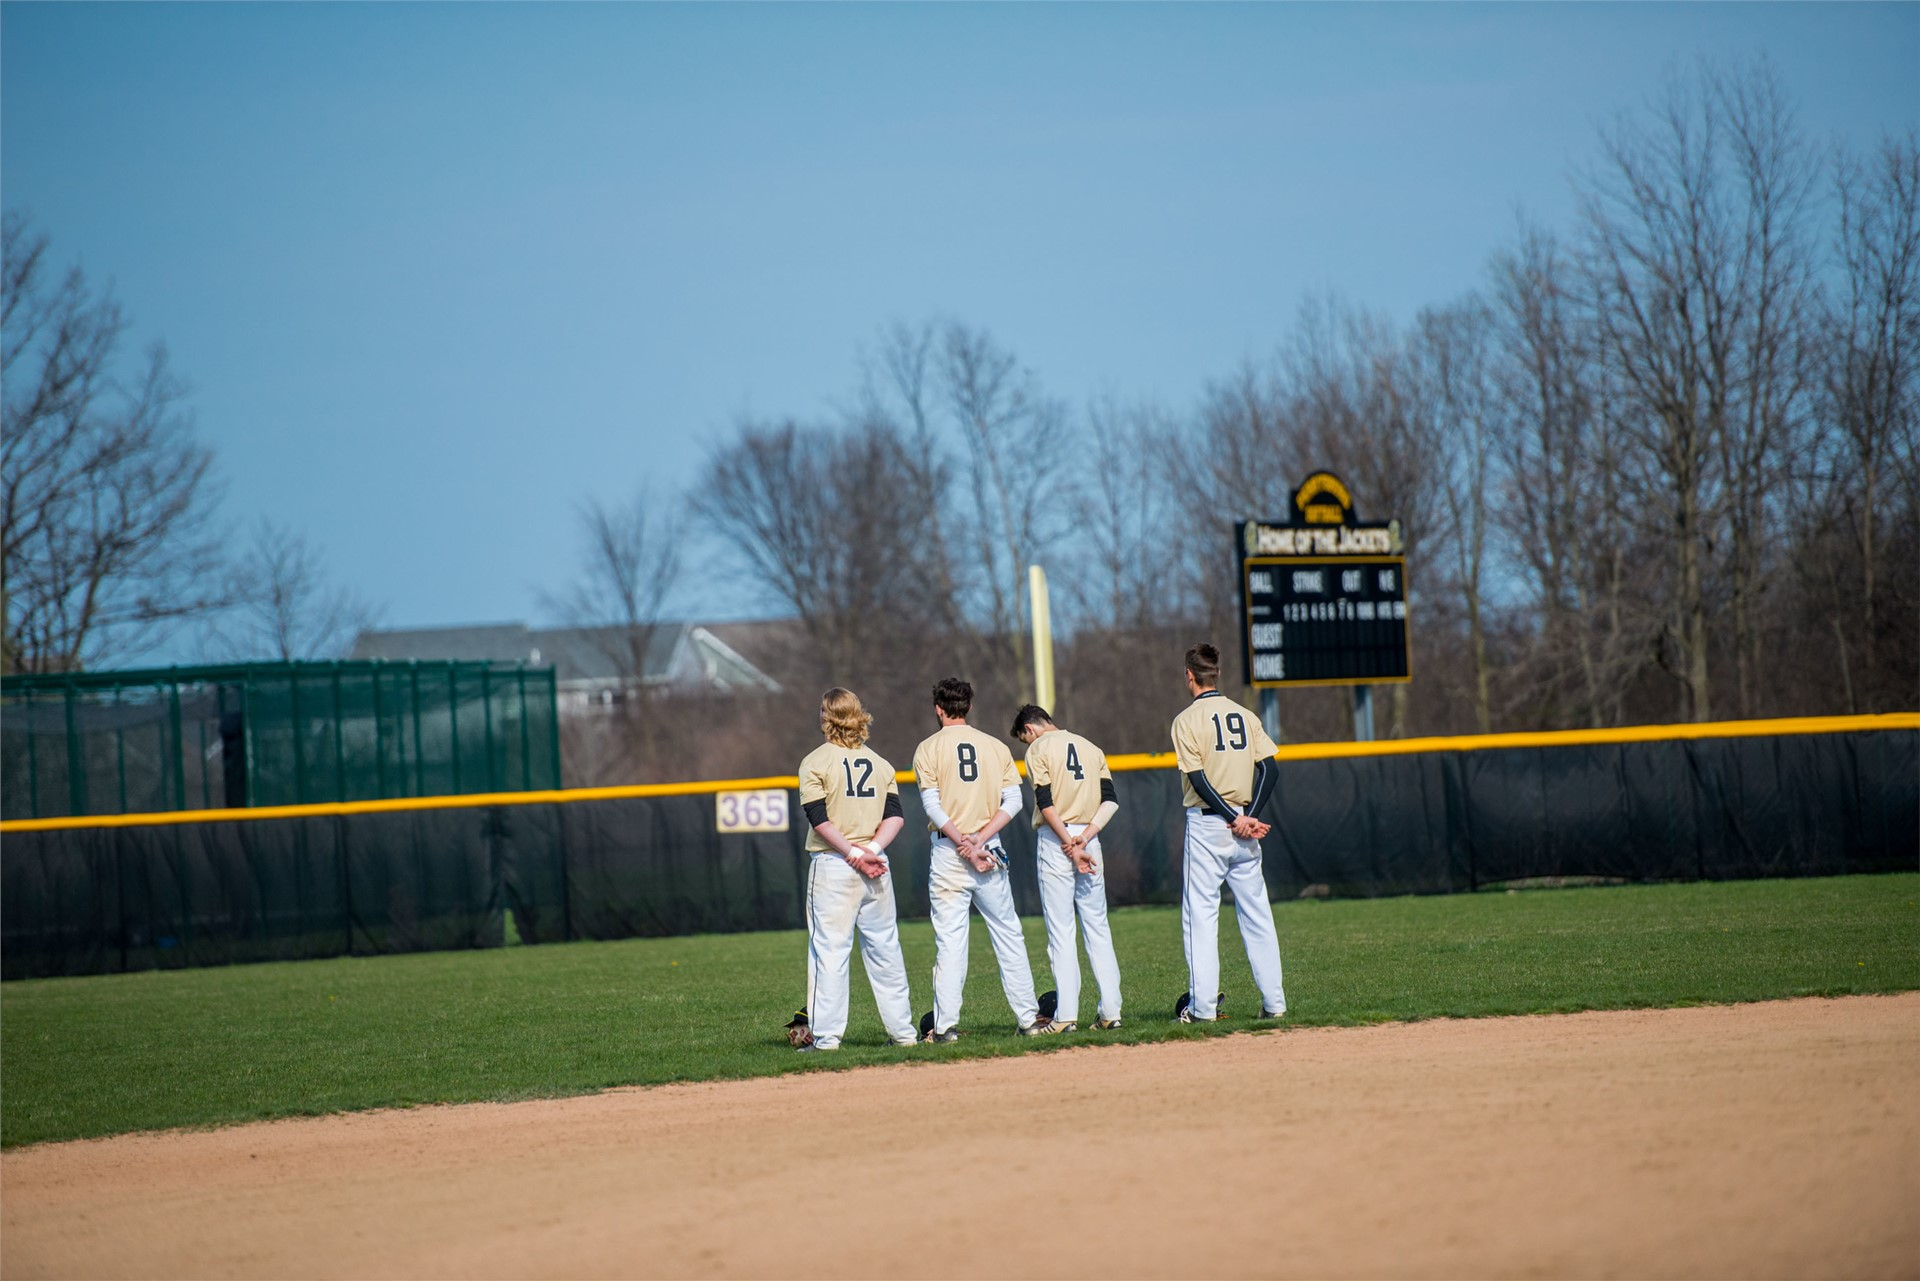 baseball players standing for the national anthem